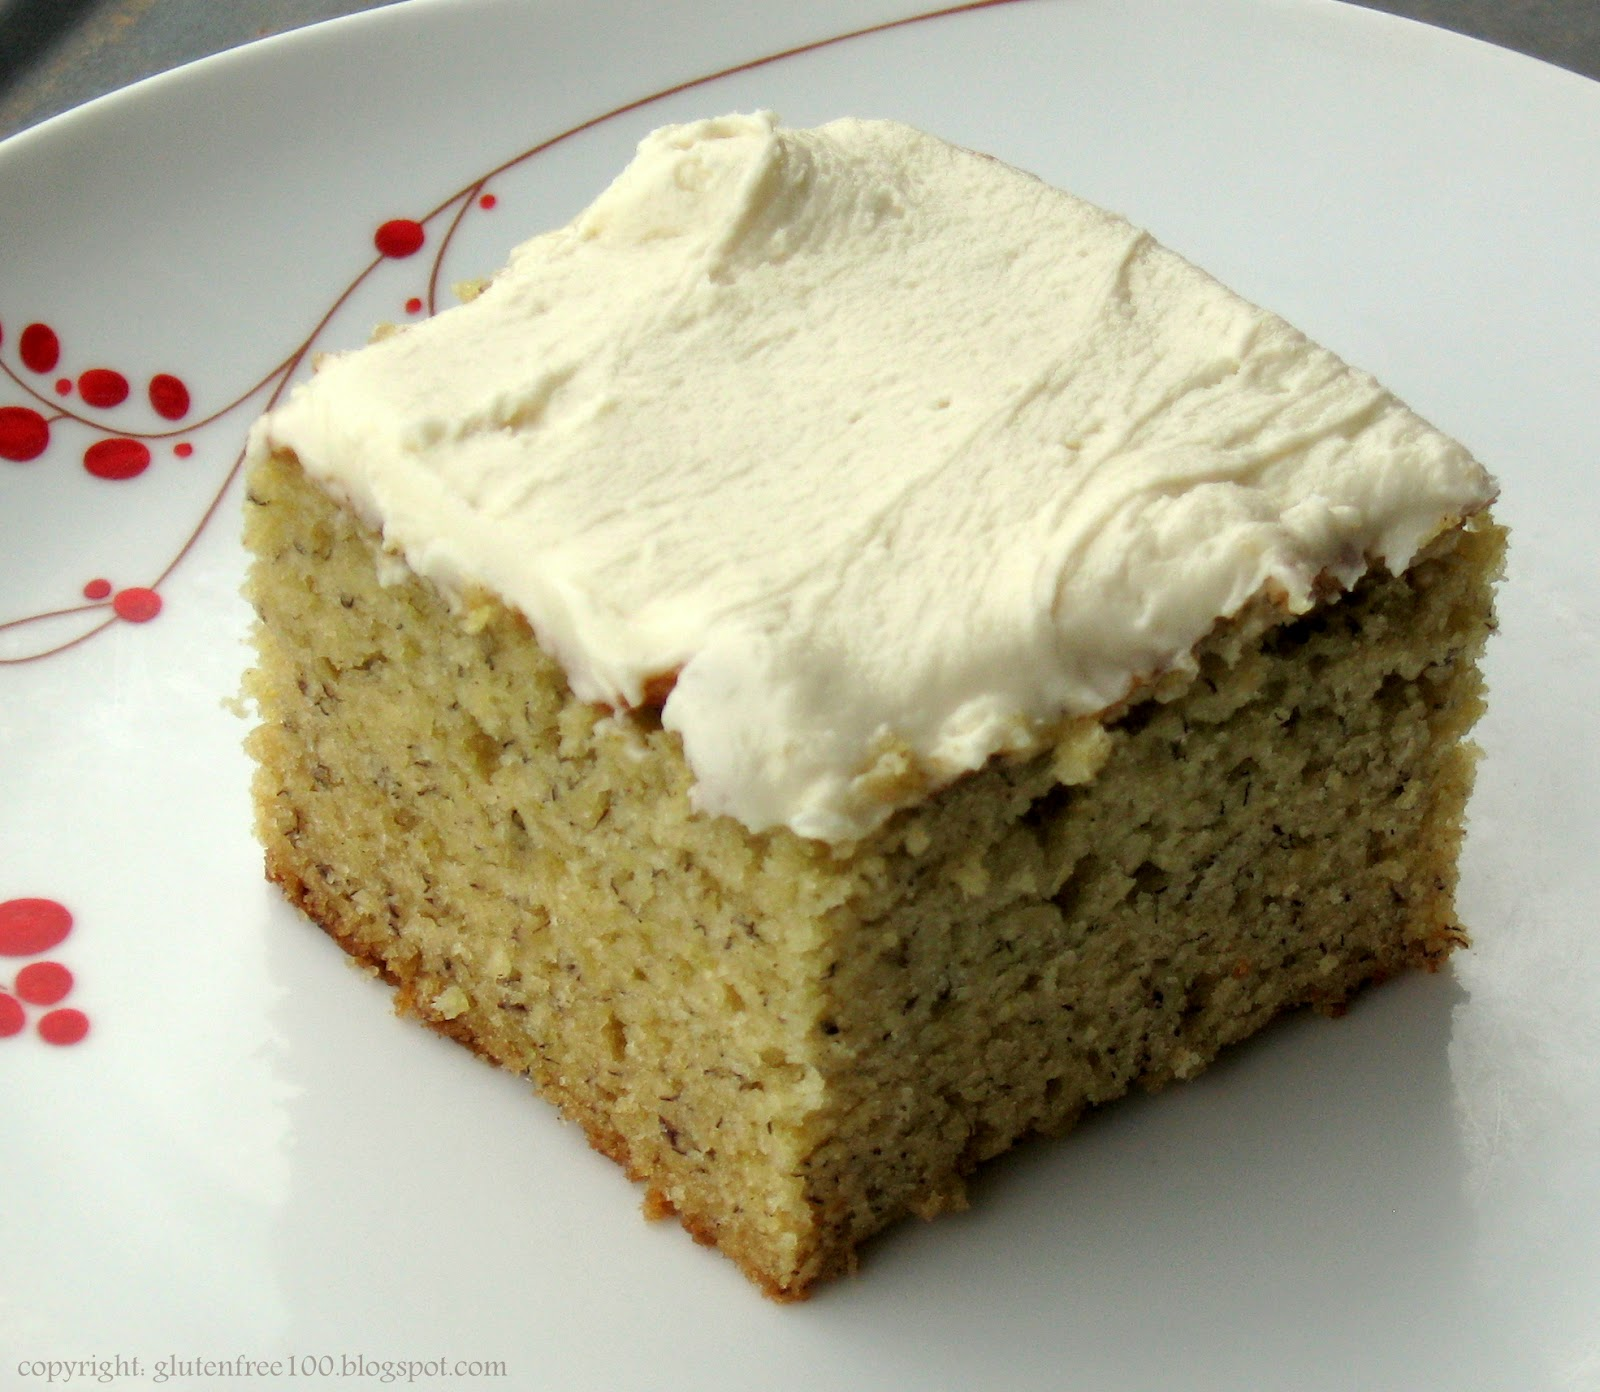 Gluten Free Banana Cake with Browned Butter Frosting Recipe